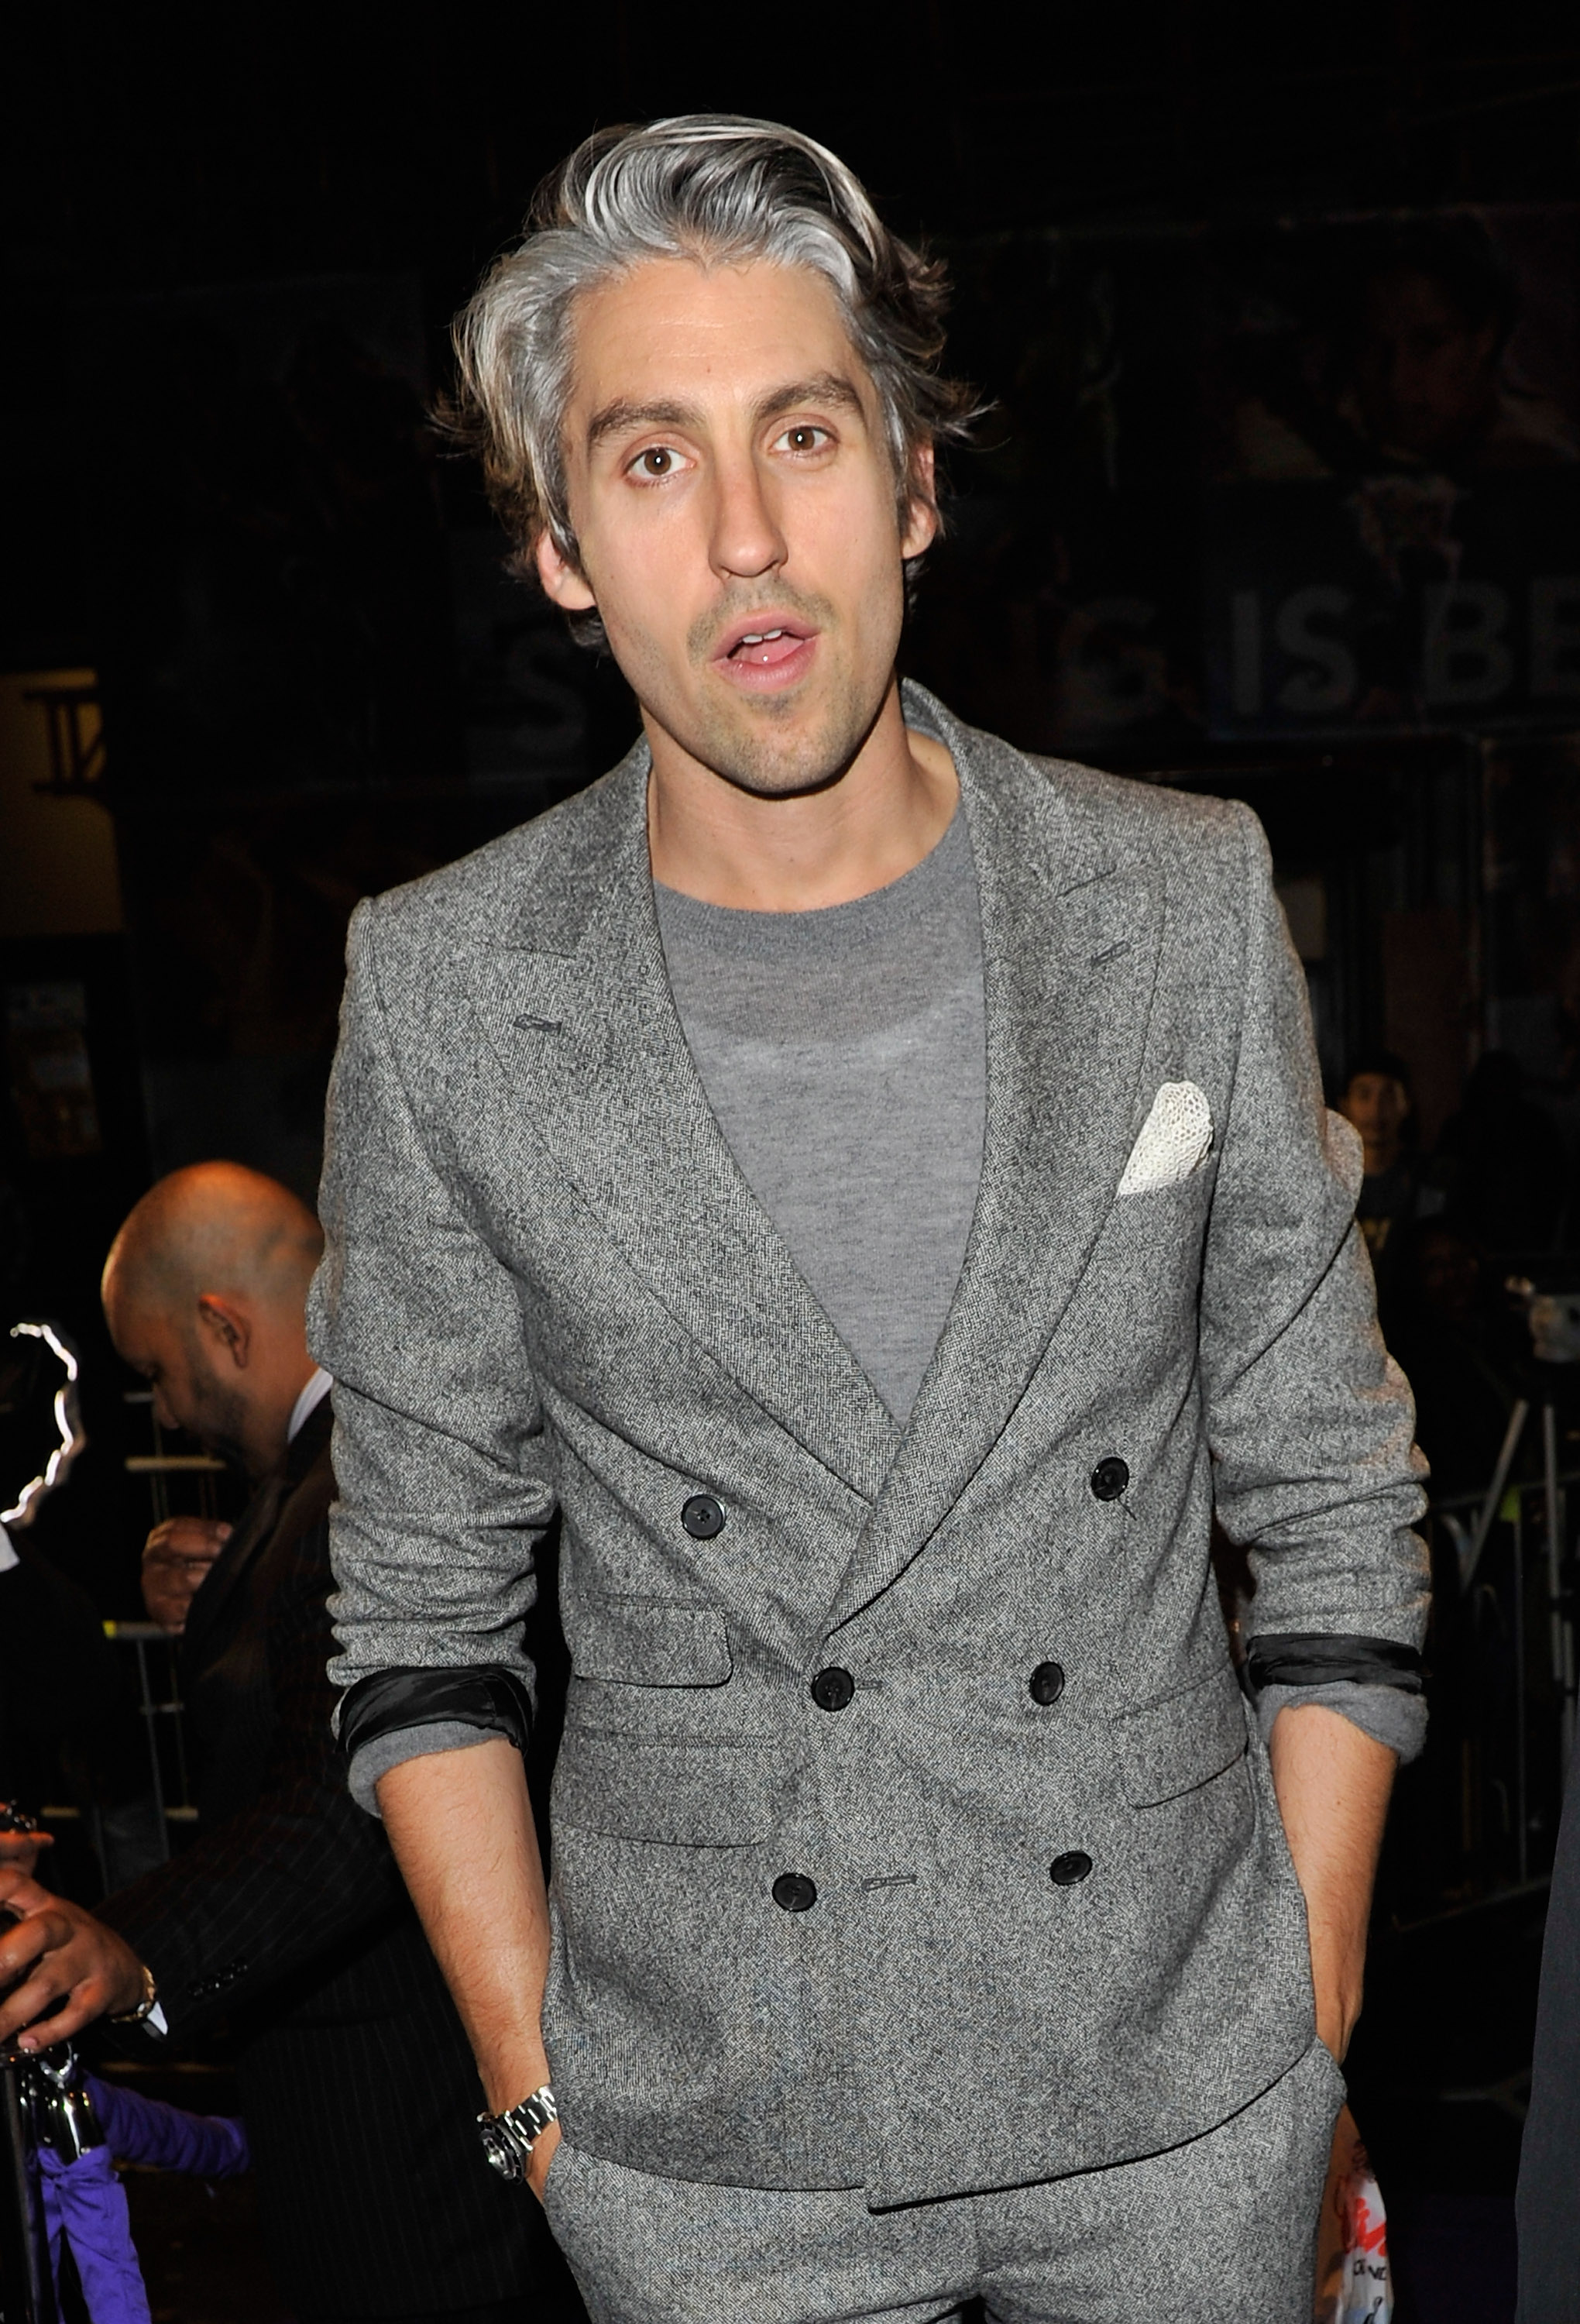 LONDON, ENGLAND - JUNE 16: George Lamb arrives at the WTA Tour Pre-Wimbledon Party at The Roof Gardens, Kensington on June 16, 2011 in London, England. (Photo by Gareth Cattermole/Getty Images for WTA)